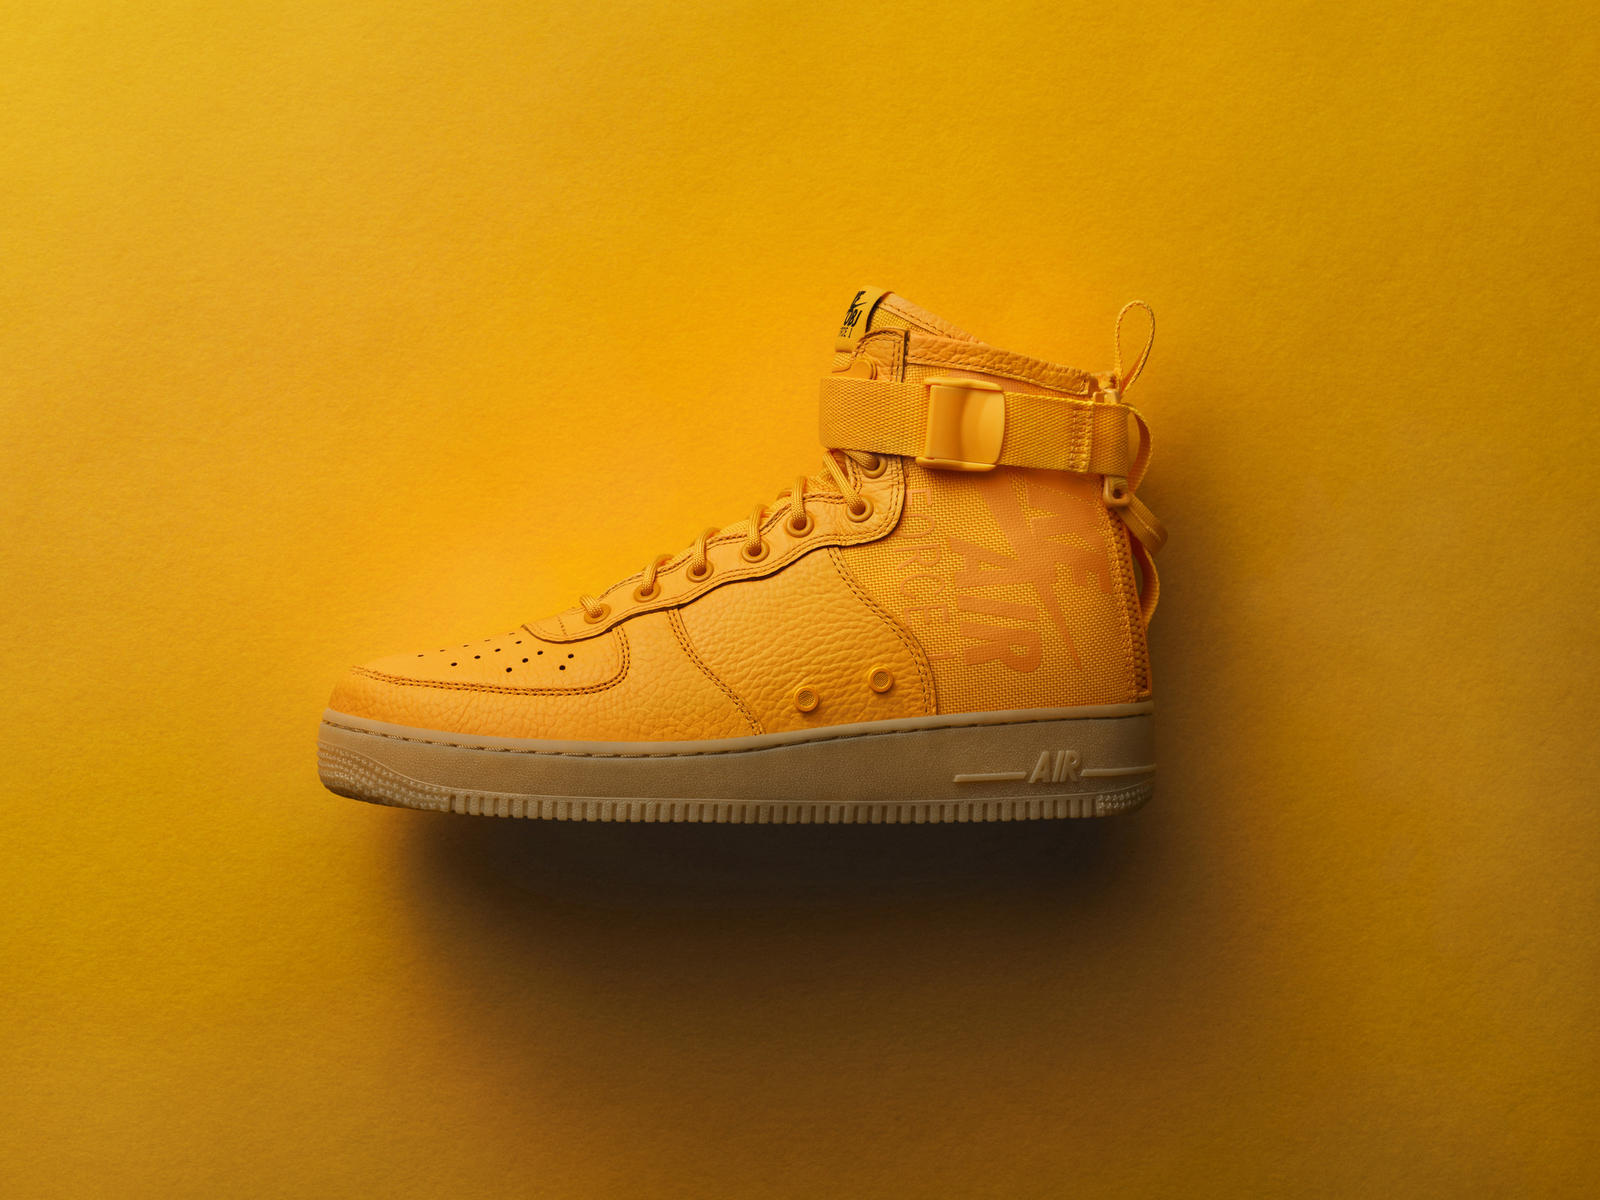 OBJ's debut signature lifestyle shoe, the SF AF-1 Mid